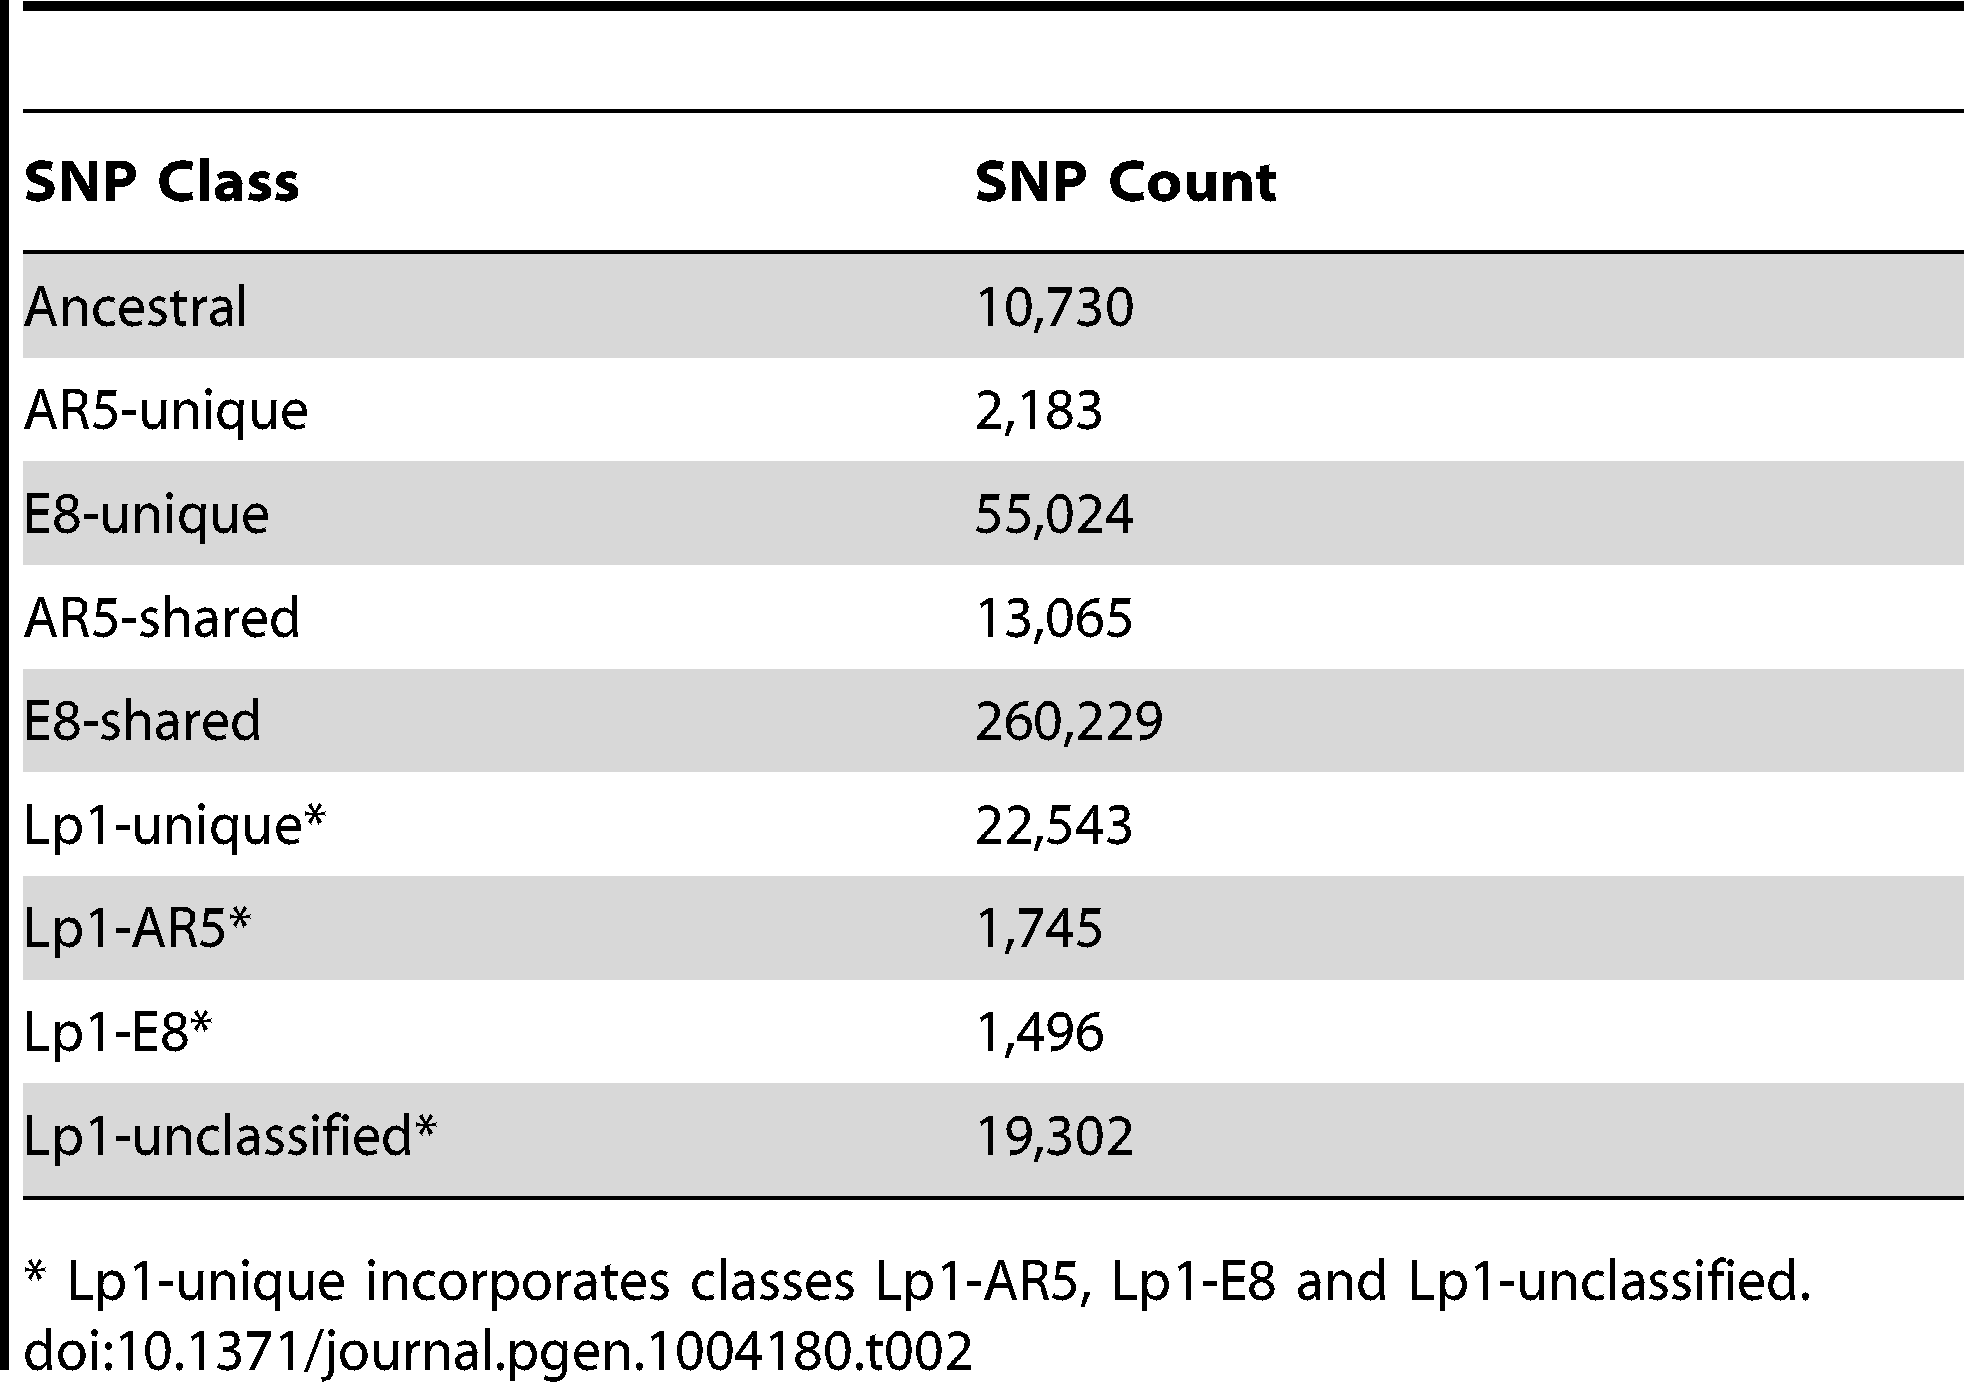 SNP counts by diagnostic class.